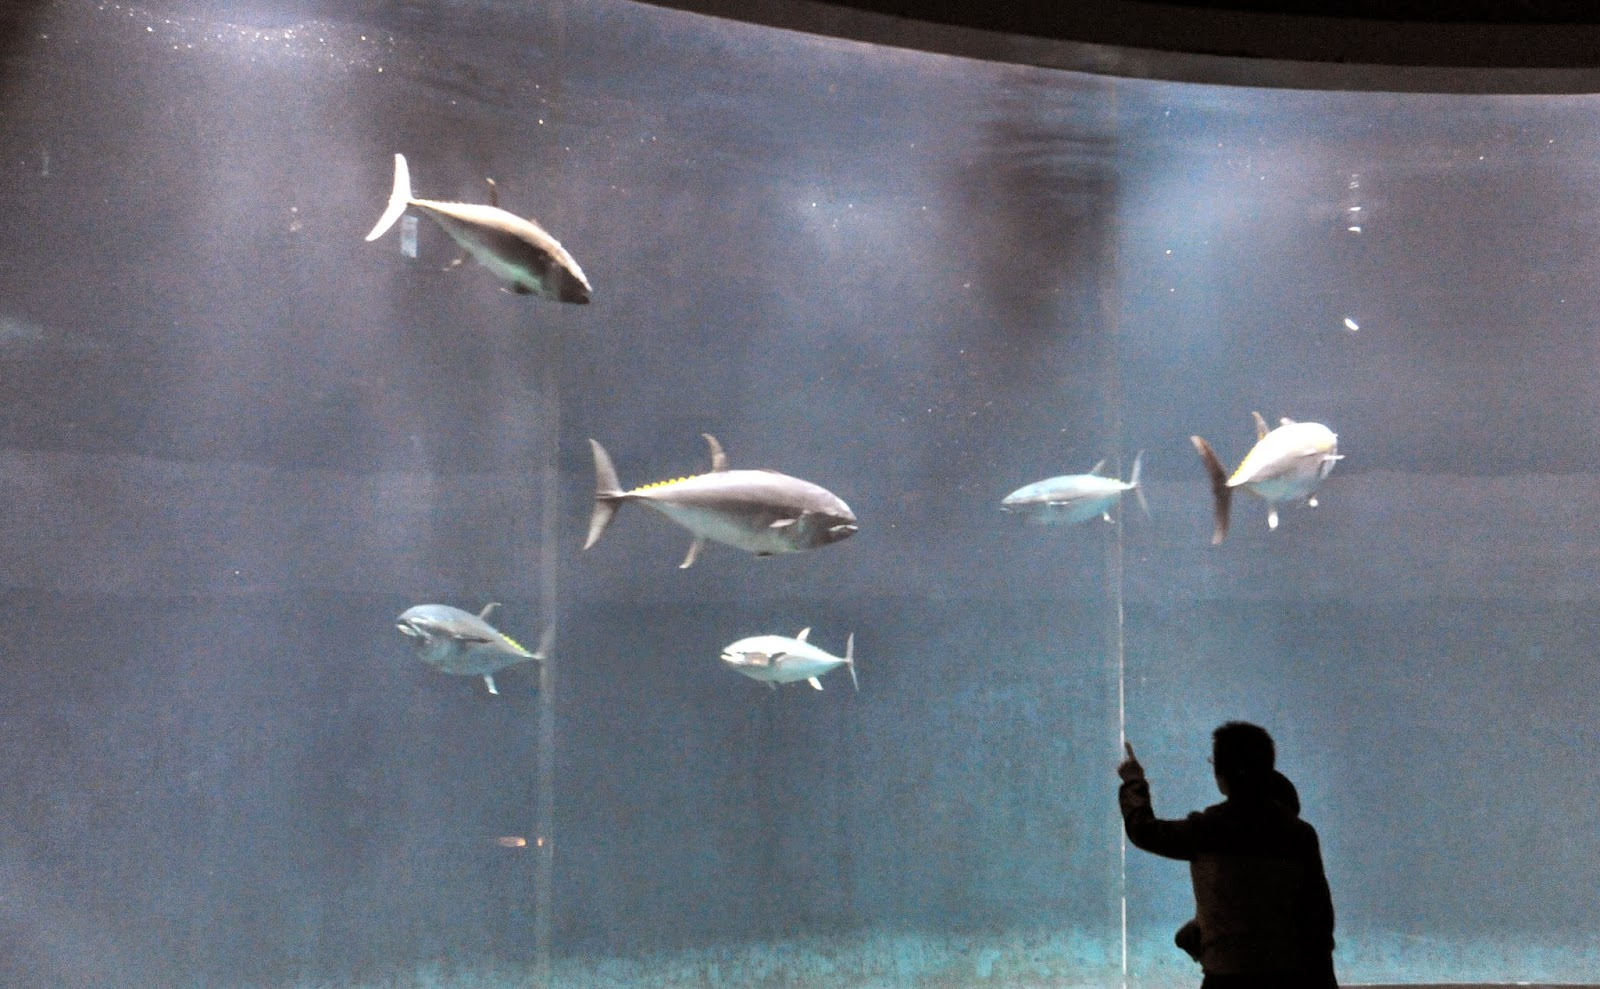 http://www.hindustantimes.com/world-news/tokyo-aquarium-baffled-by-mystery-fish-deaths/article1-1330373.aspx